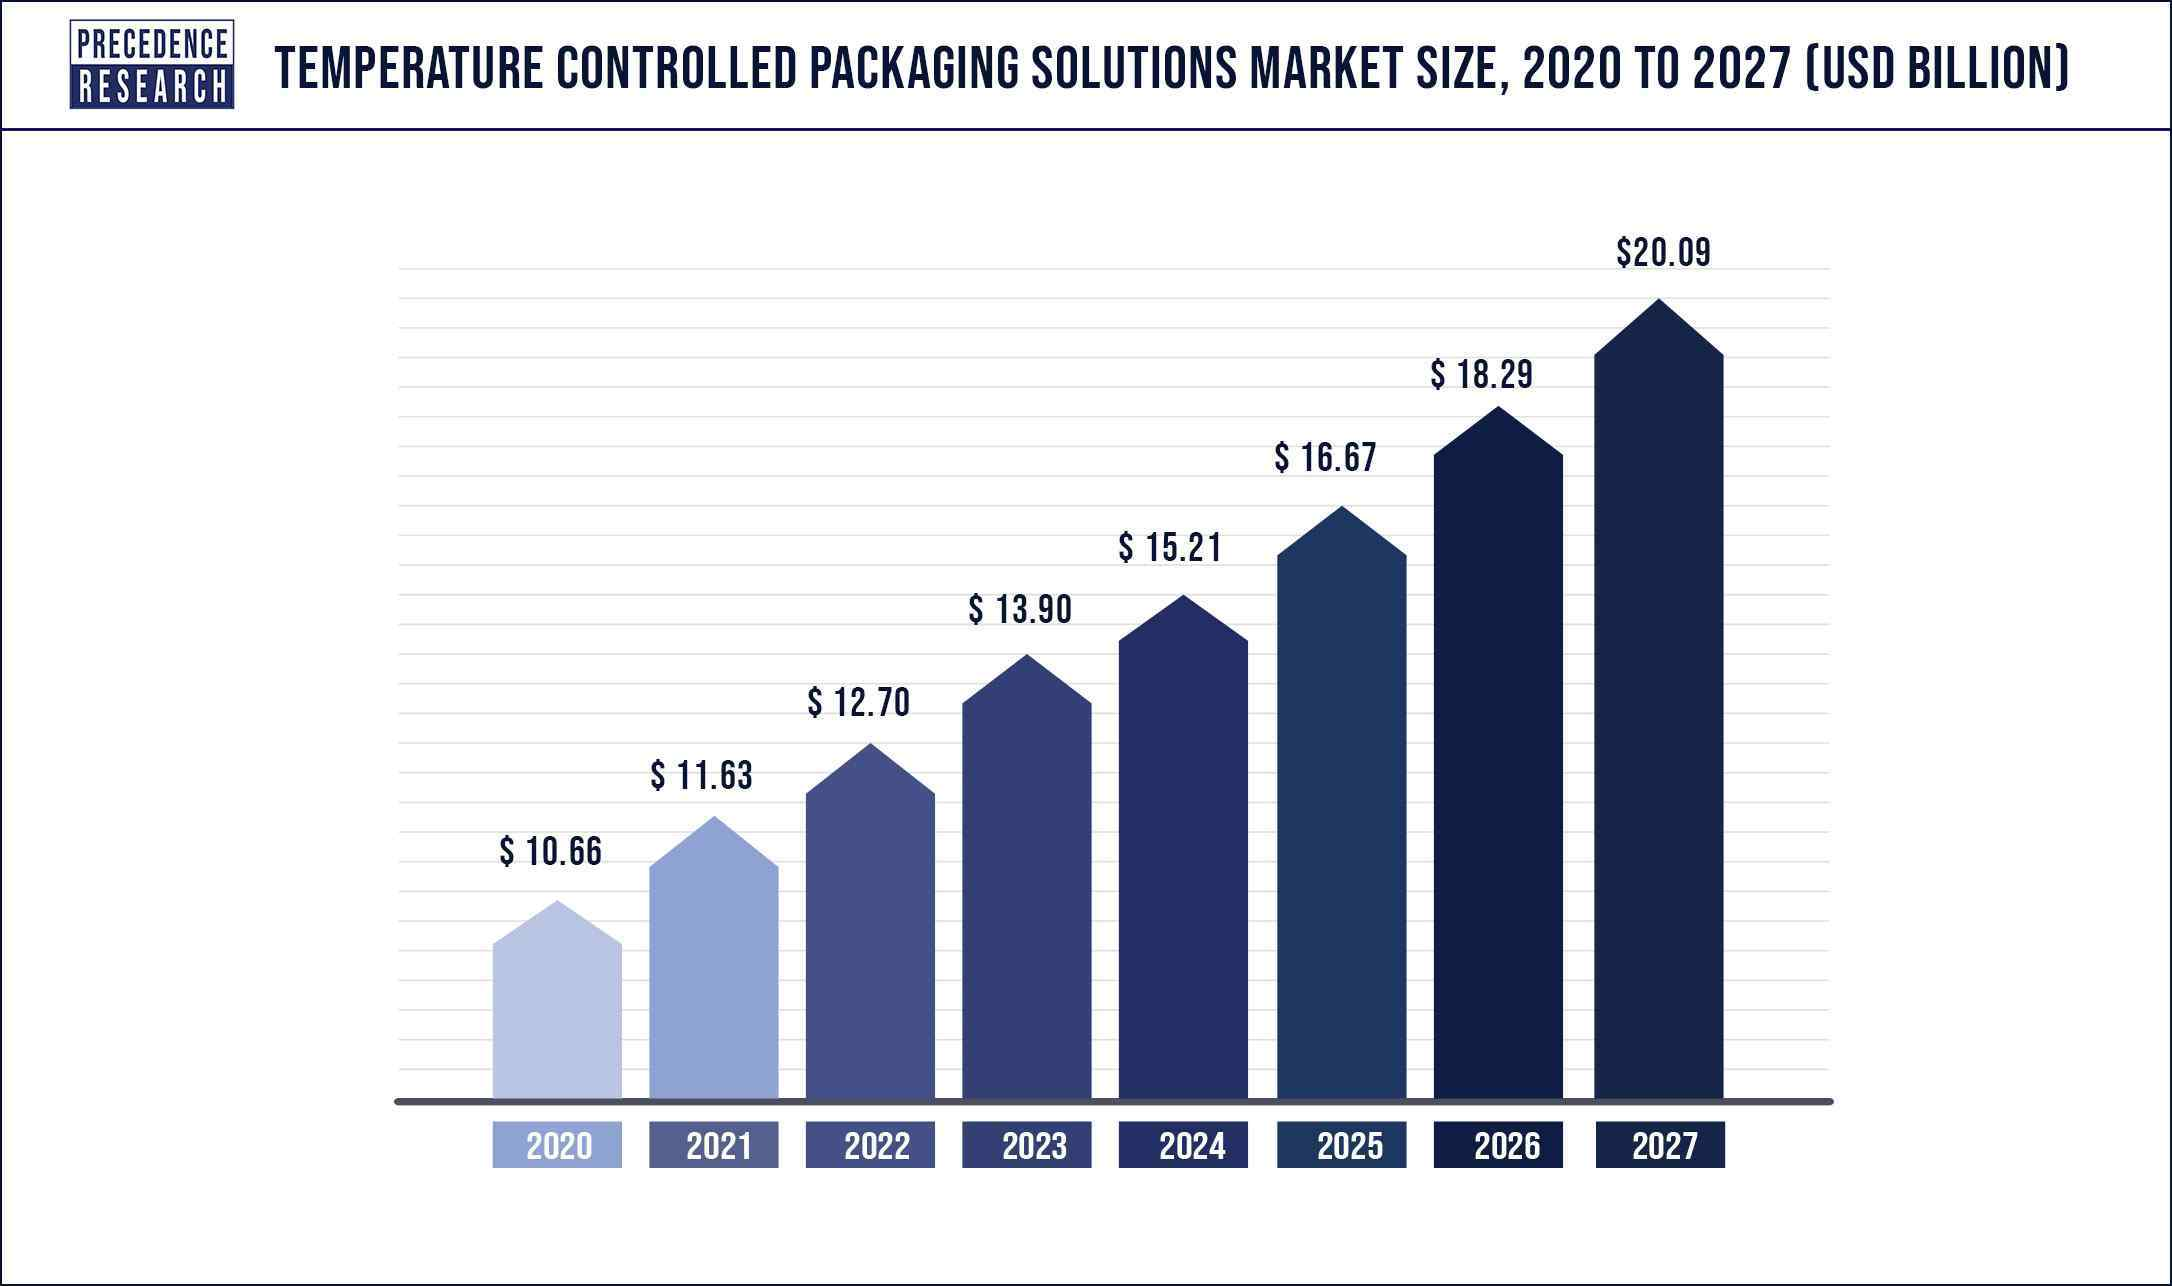 Temperature Controlled Packaging Solutions Market Size 2020 to 2027